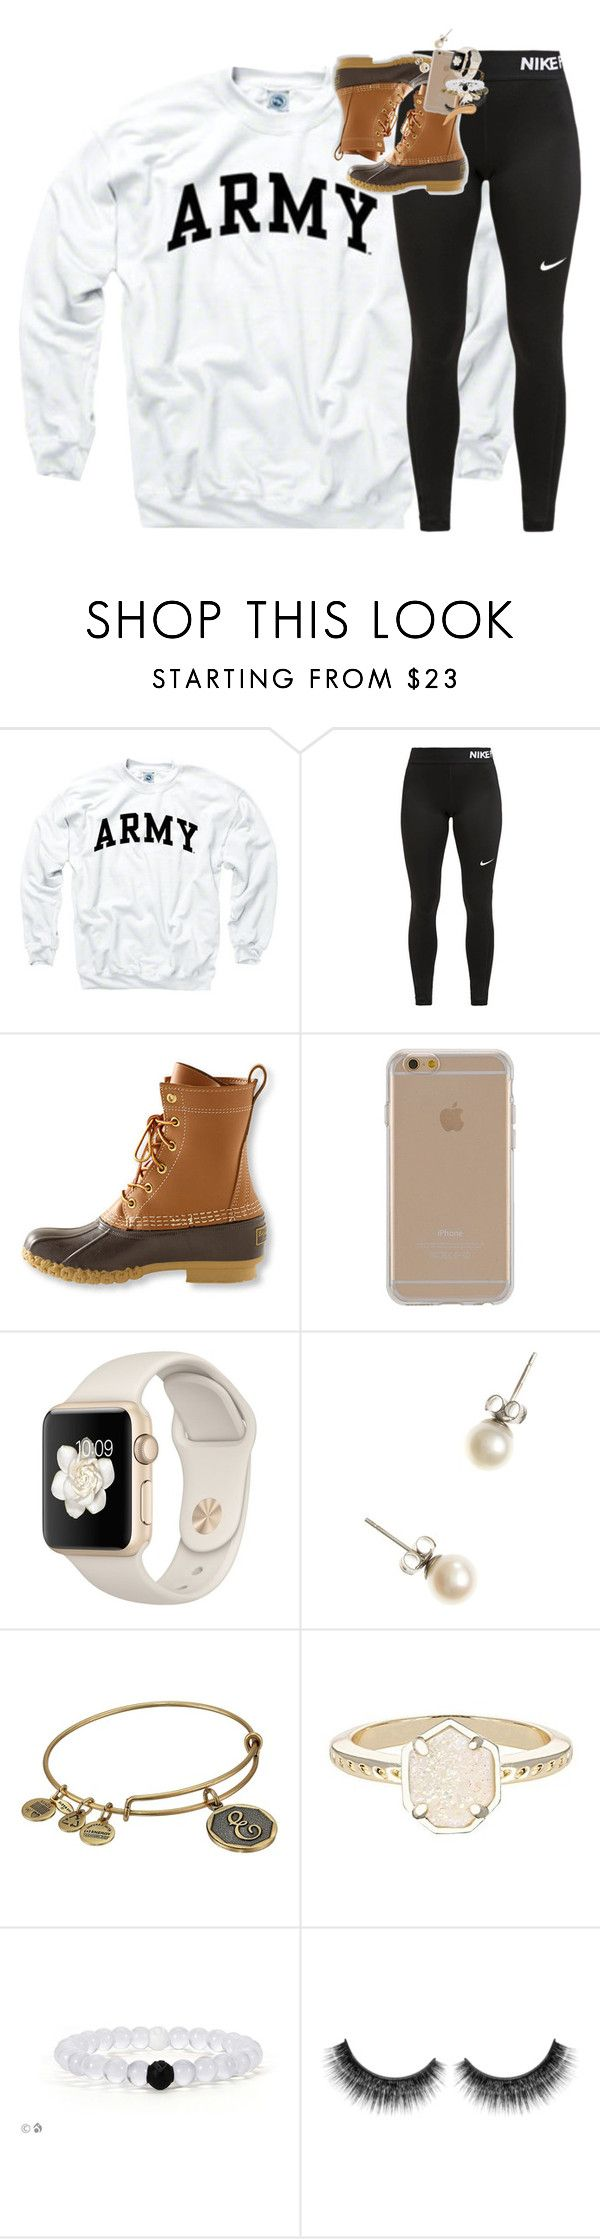 """""""Just got back from a haloween party!!"""" by classynsouthern ❤ liked on Polyvore featuring NIKE, L.L.Bean, Agent 18, J.Crew, Alex and Ani and Kendra Scott"""